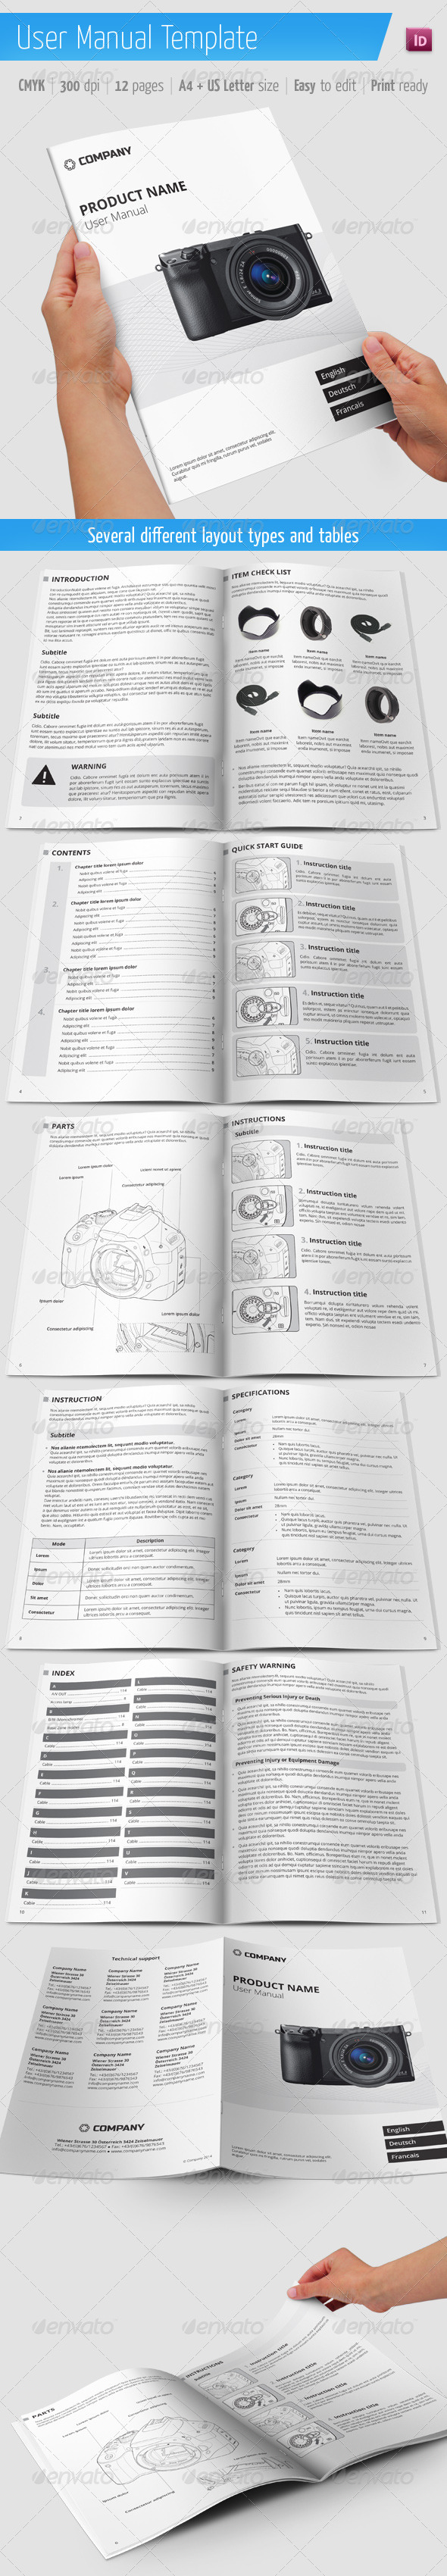 User Manual Template   Informational Brochures  Product Manual Template